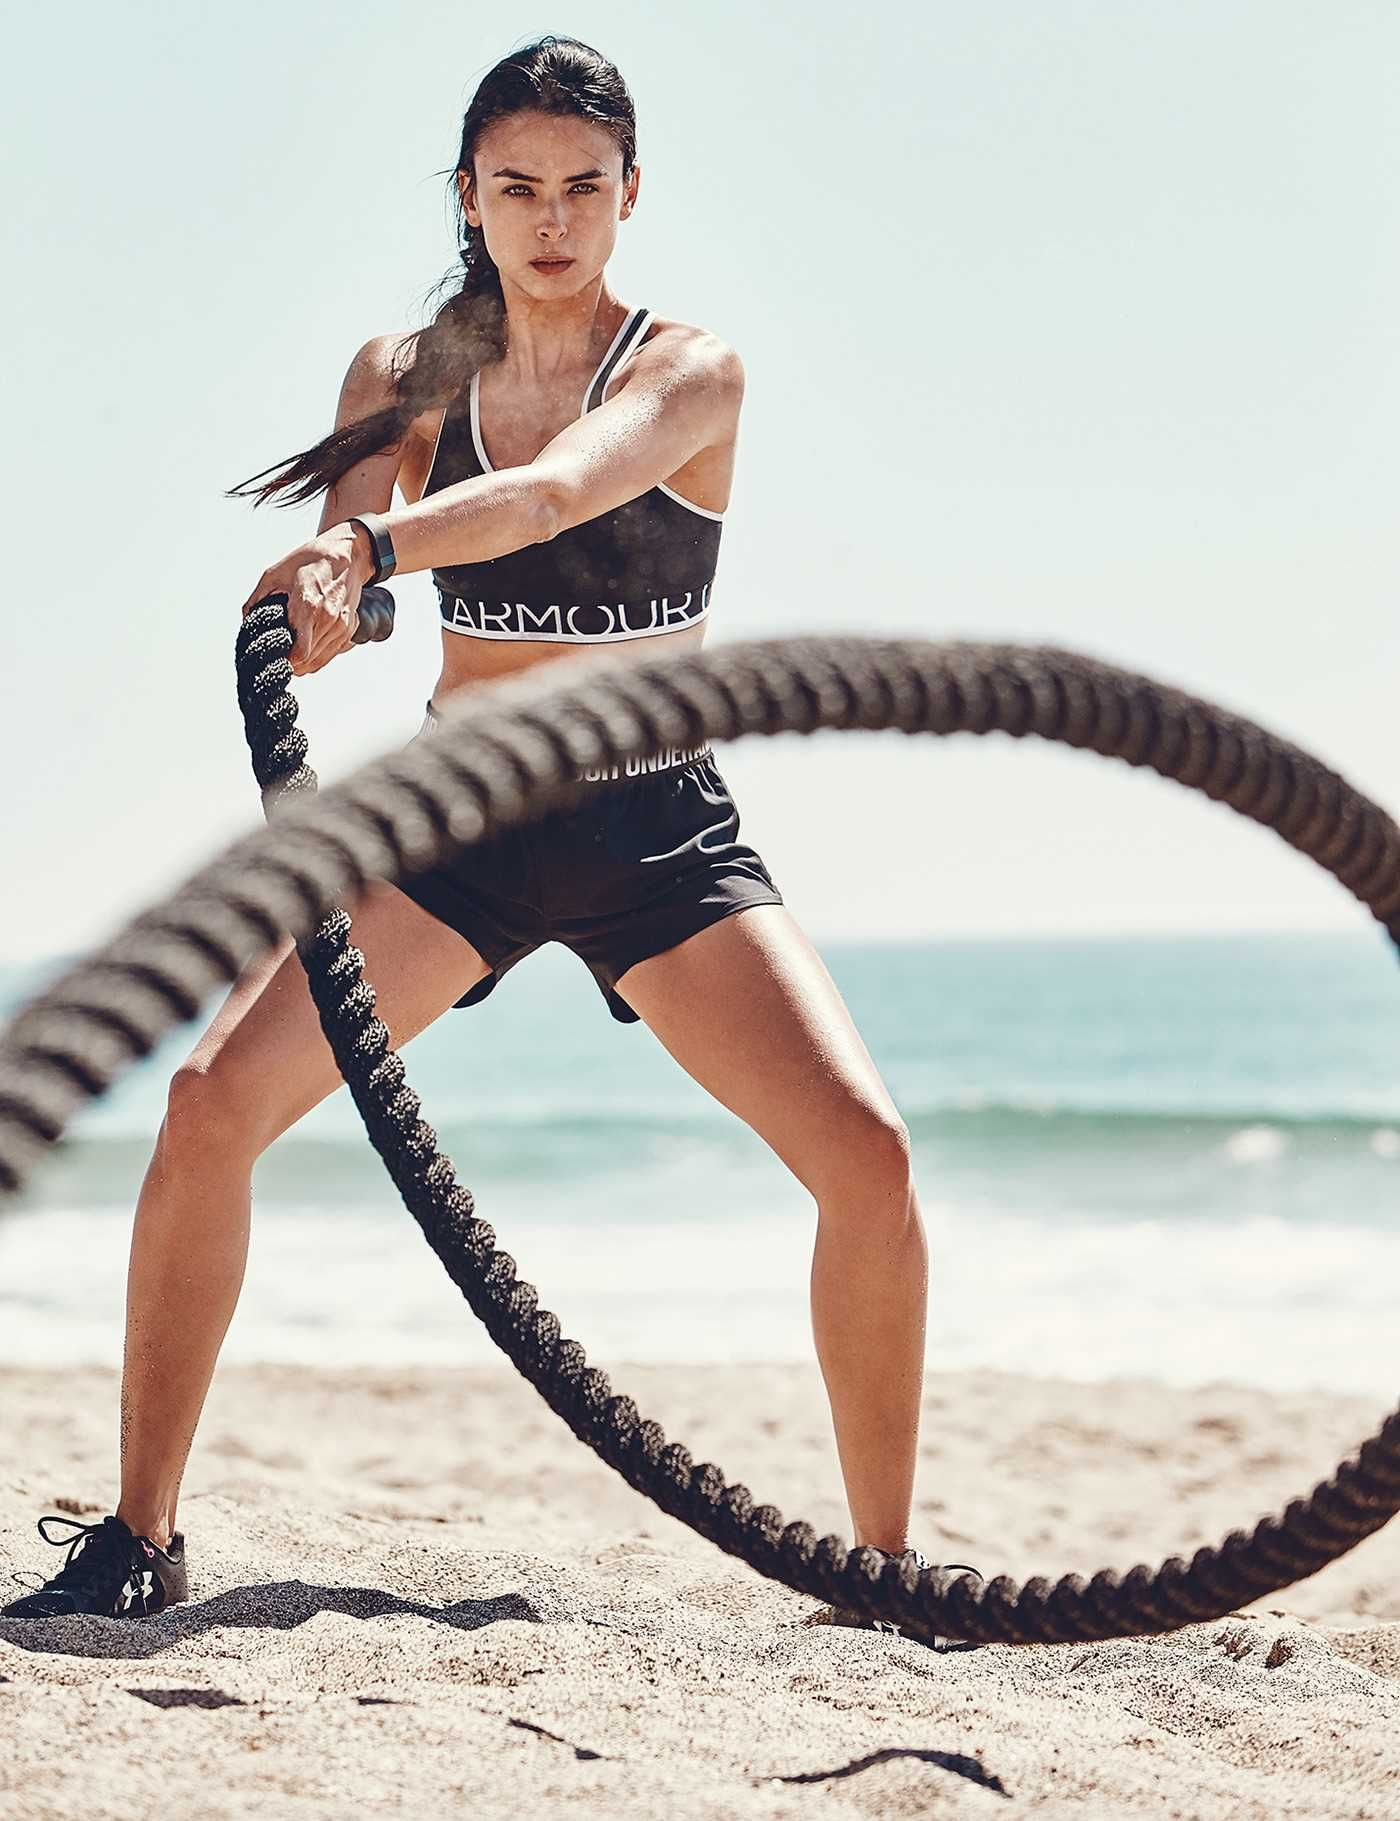 Fitness Advertising Sport Commercial Photography By Matt Hawthorne Fitness Photos Fitness Photoshoot Fitness Motivation Pictures